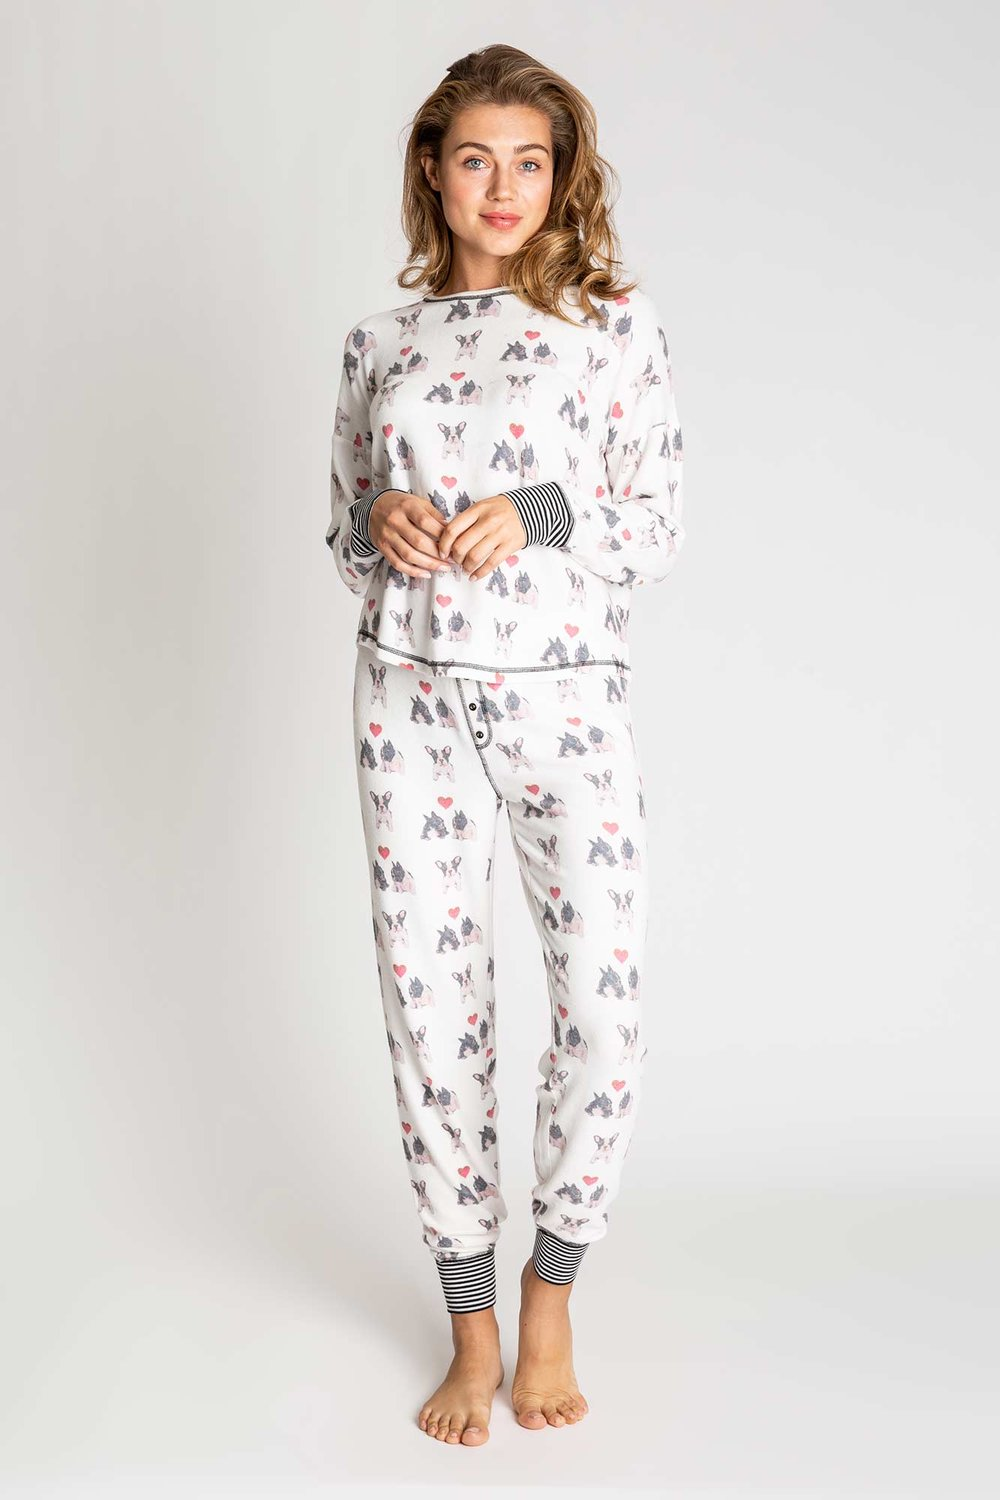 P.J. SALVAGE PJS - Is it even Christmas if you don't get a PJ set?! PJ Salvage has the cutest & comfiest pajamas around!